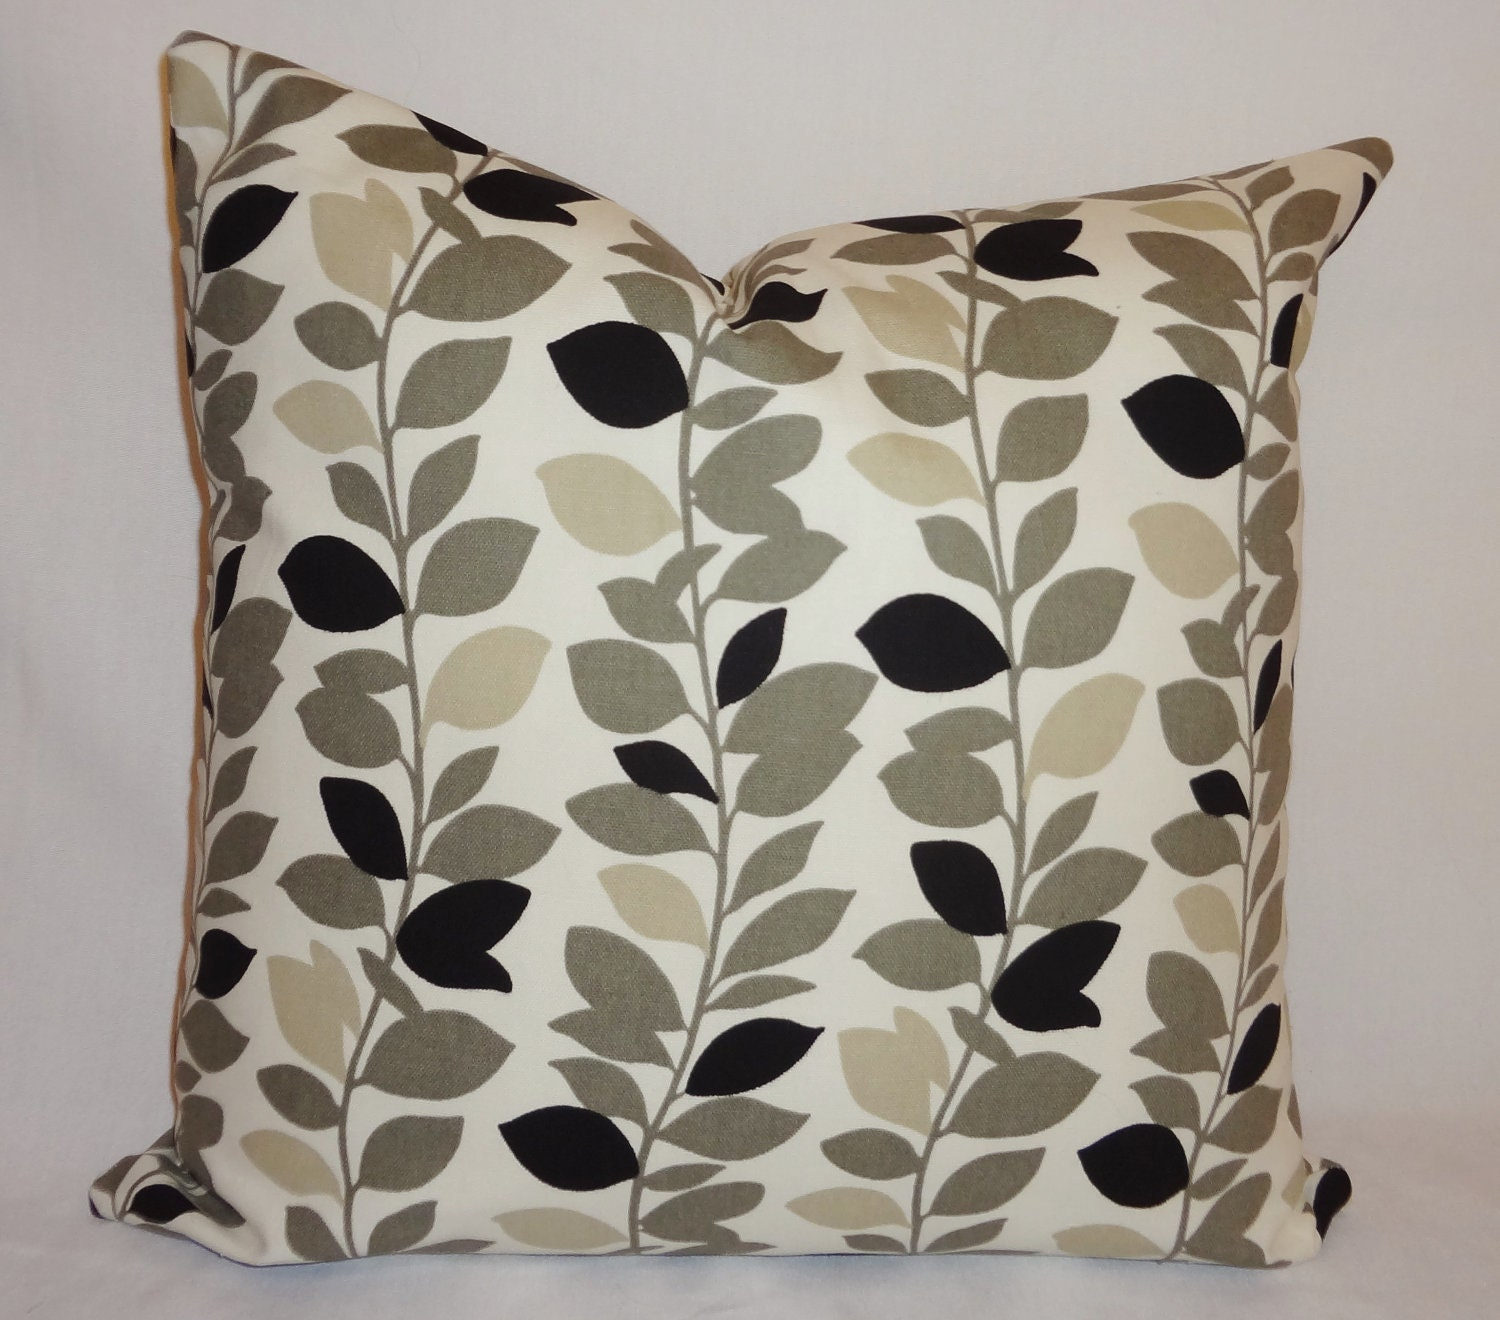 Decorative Pillows Black And Grey : Black Grey & Tan Leaves Vine Pillows Decorative by HomeLiving